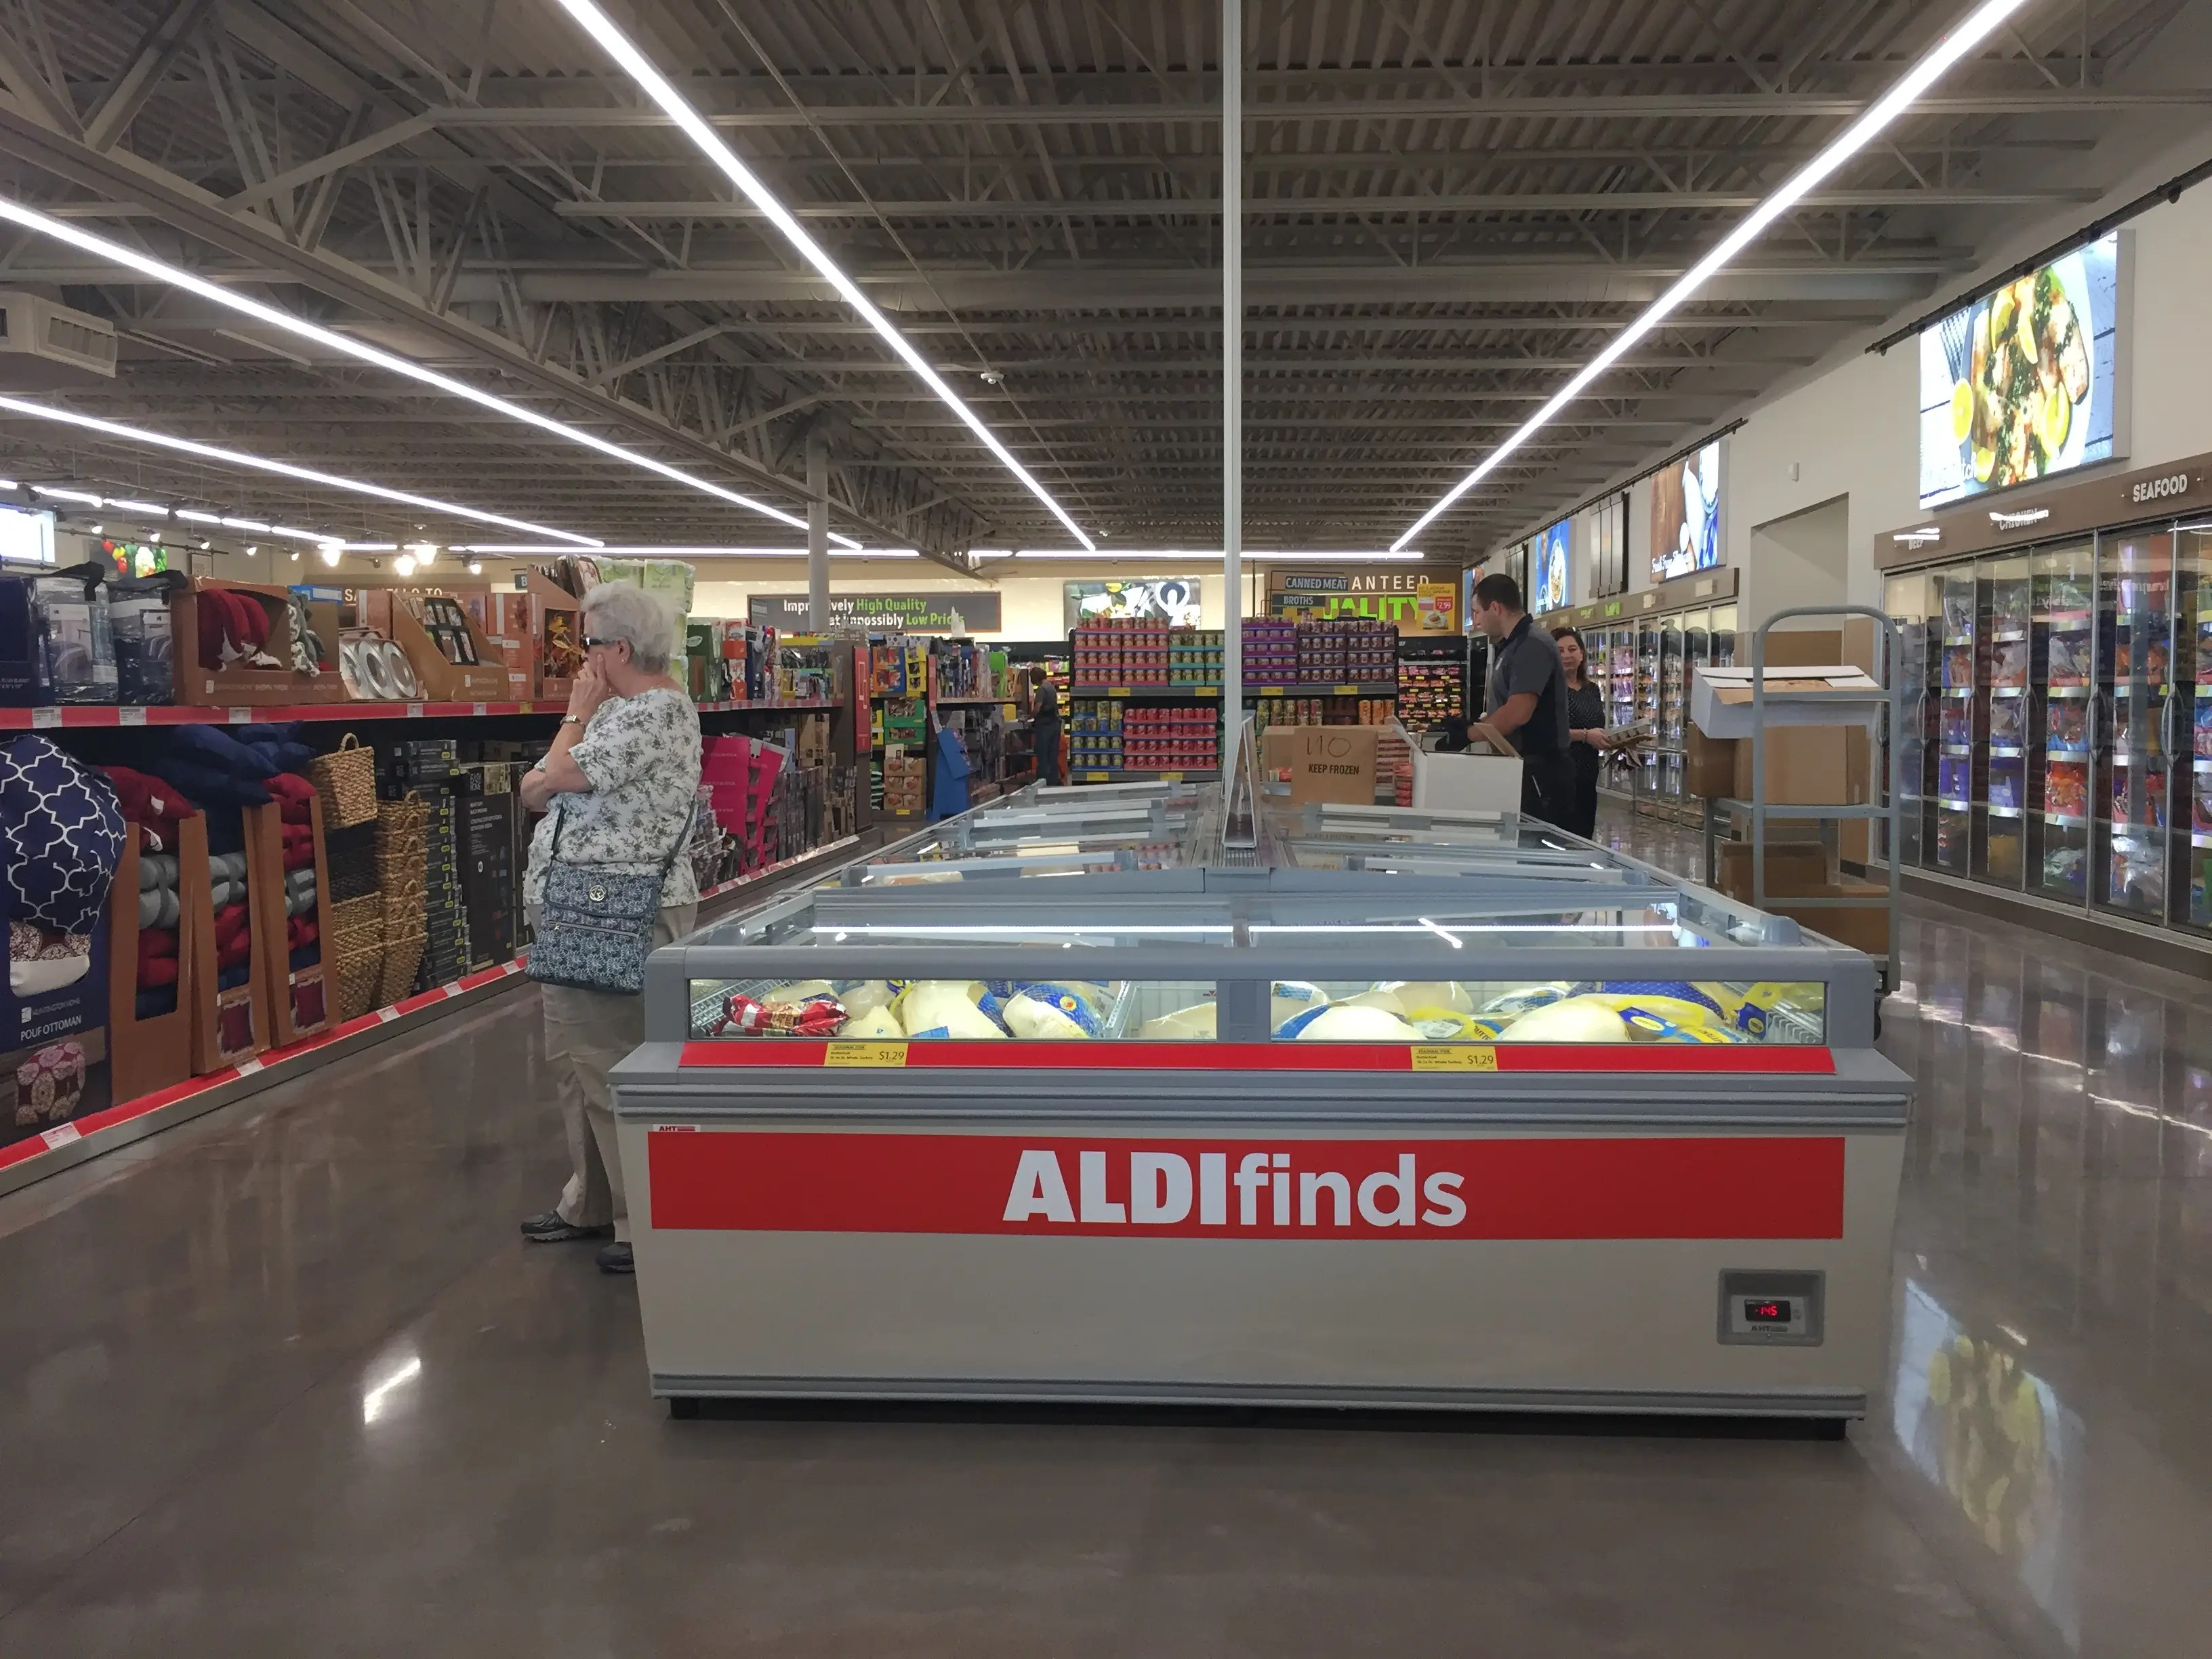 Unlike 365, however, Aldi sells home goods like pillows and holiday decorations.